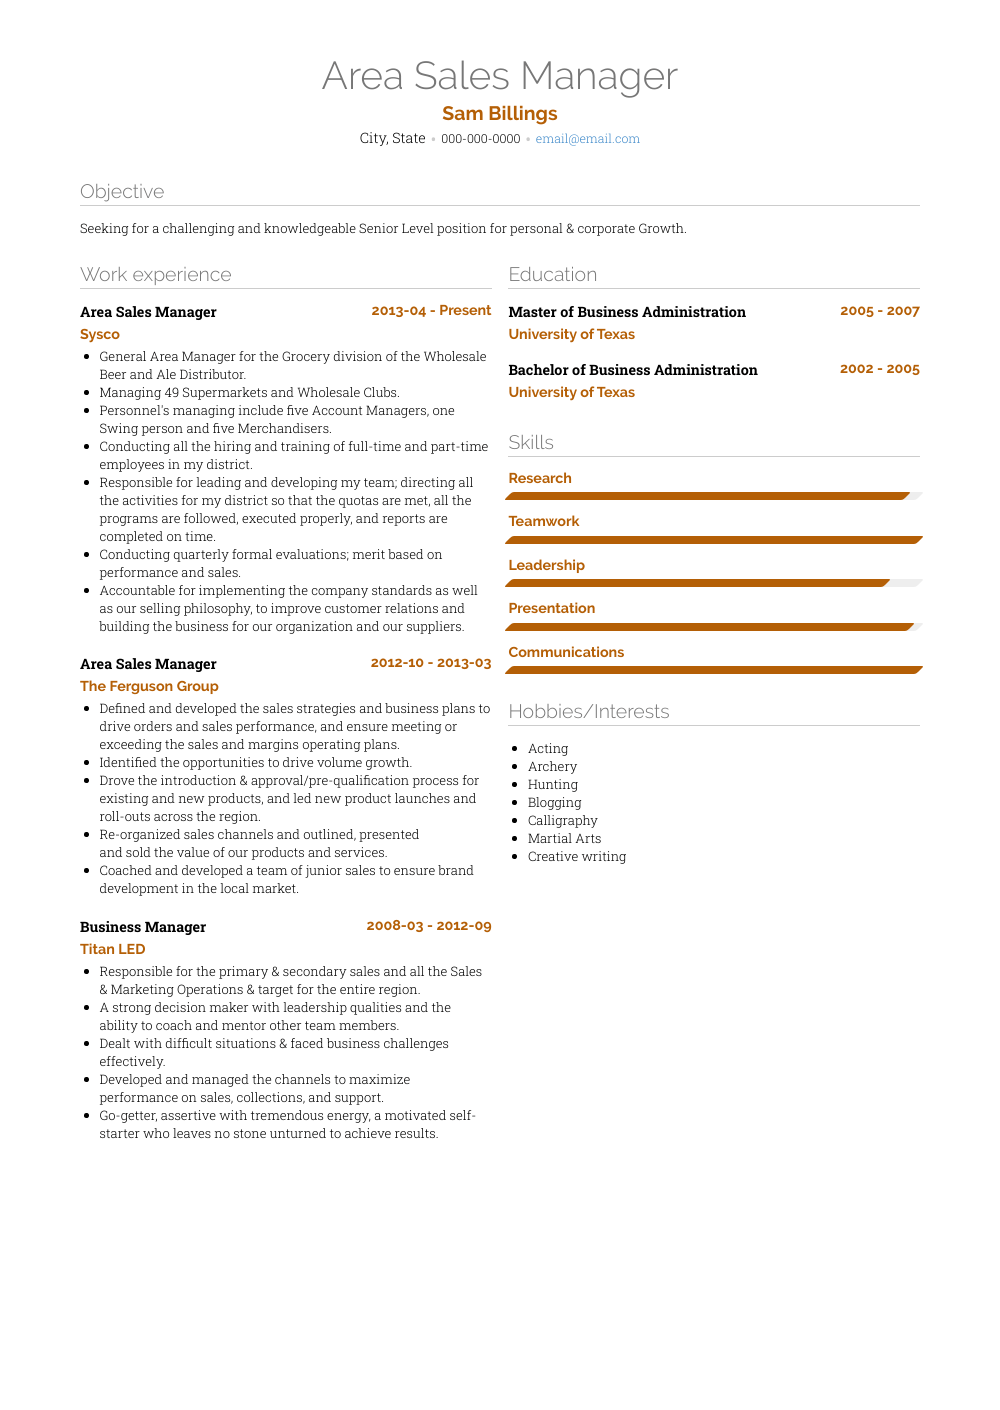 Area Sales Manager Resume Samples & Templates VisualCV